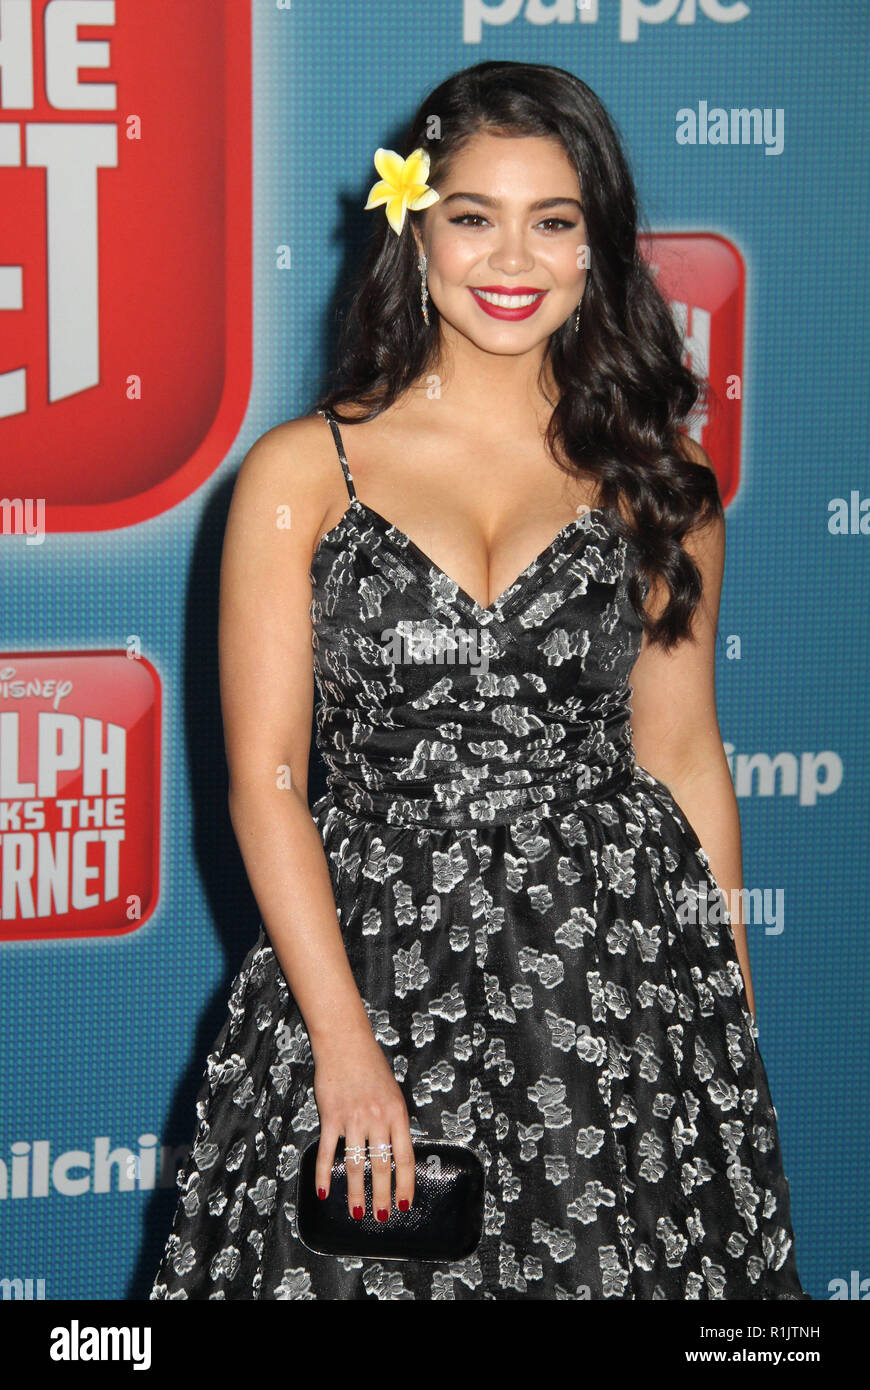 Auli'i Cravalho  11/05/2018 The World Premiere of 'Ralph Breaks the Internet' held at El Capitan Theatre in Los Angeles, CA   Photo: Cronos/Hollywood News - Stock Image